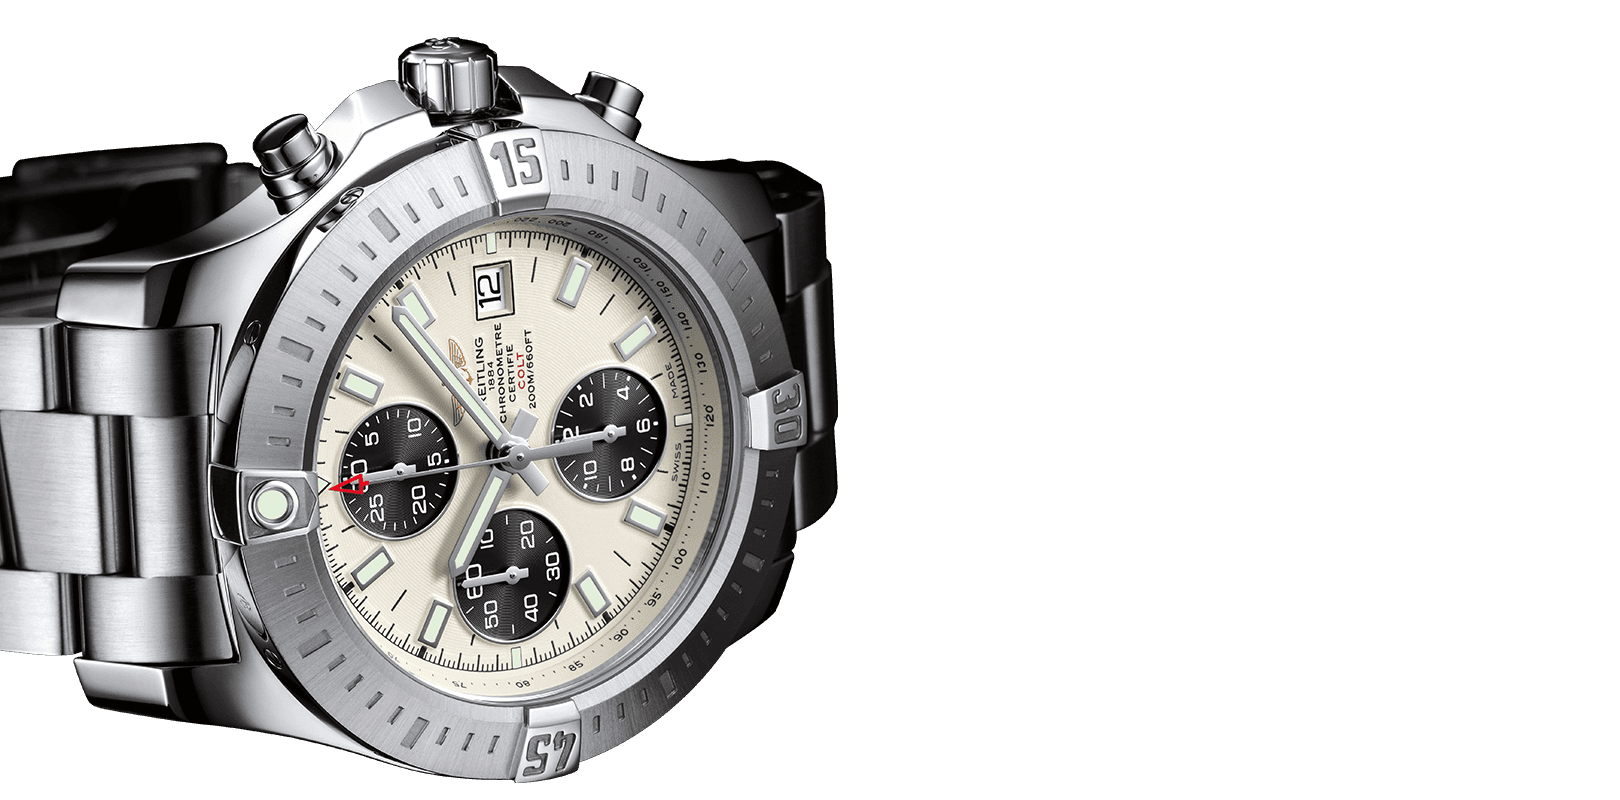 Do Watches Have Fake Chronograph